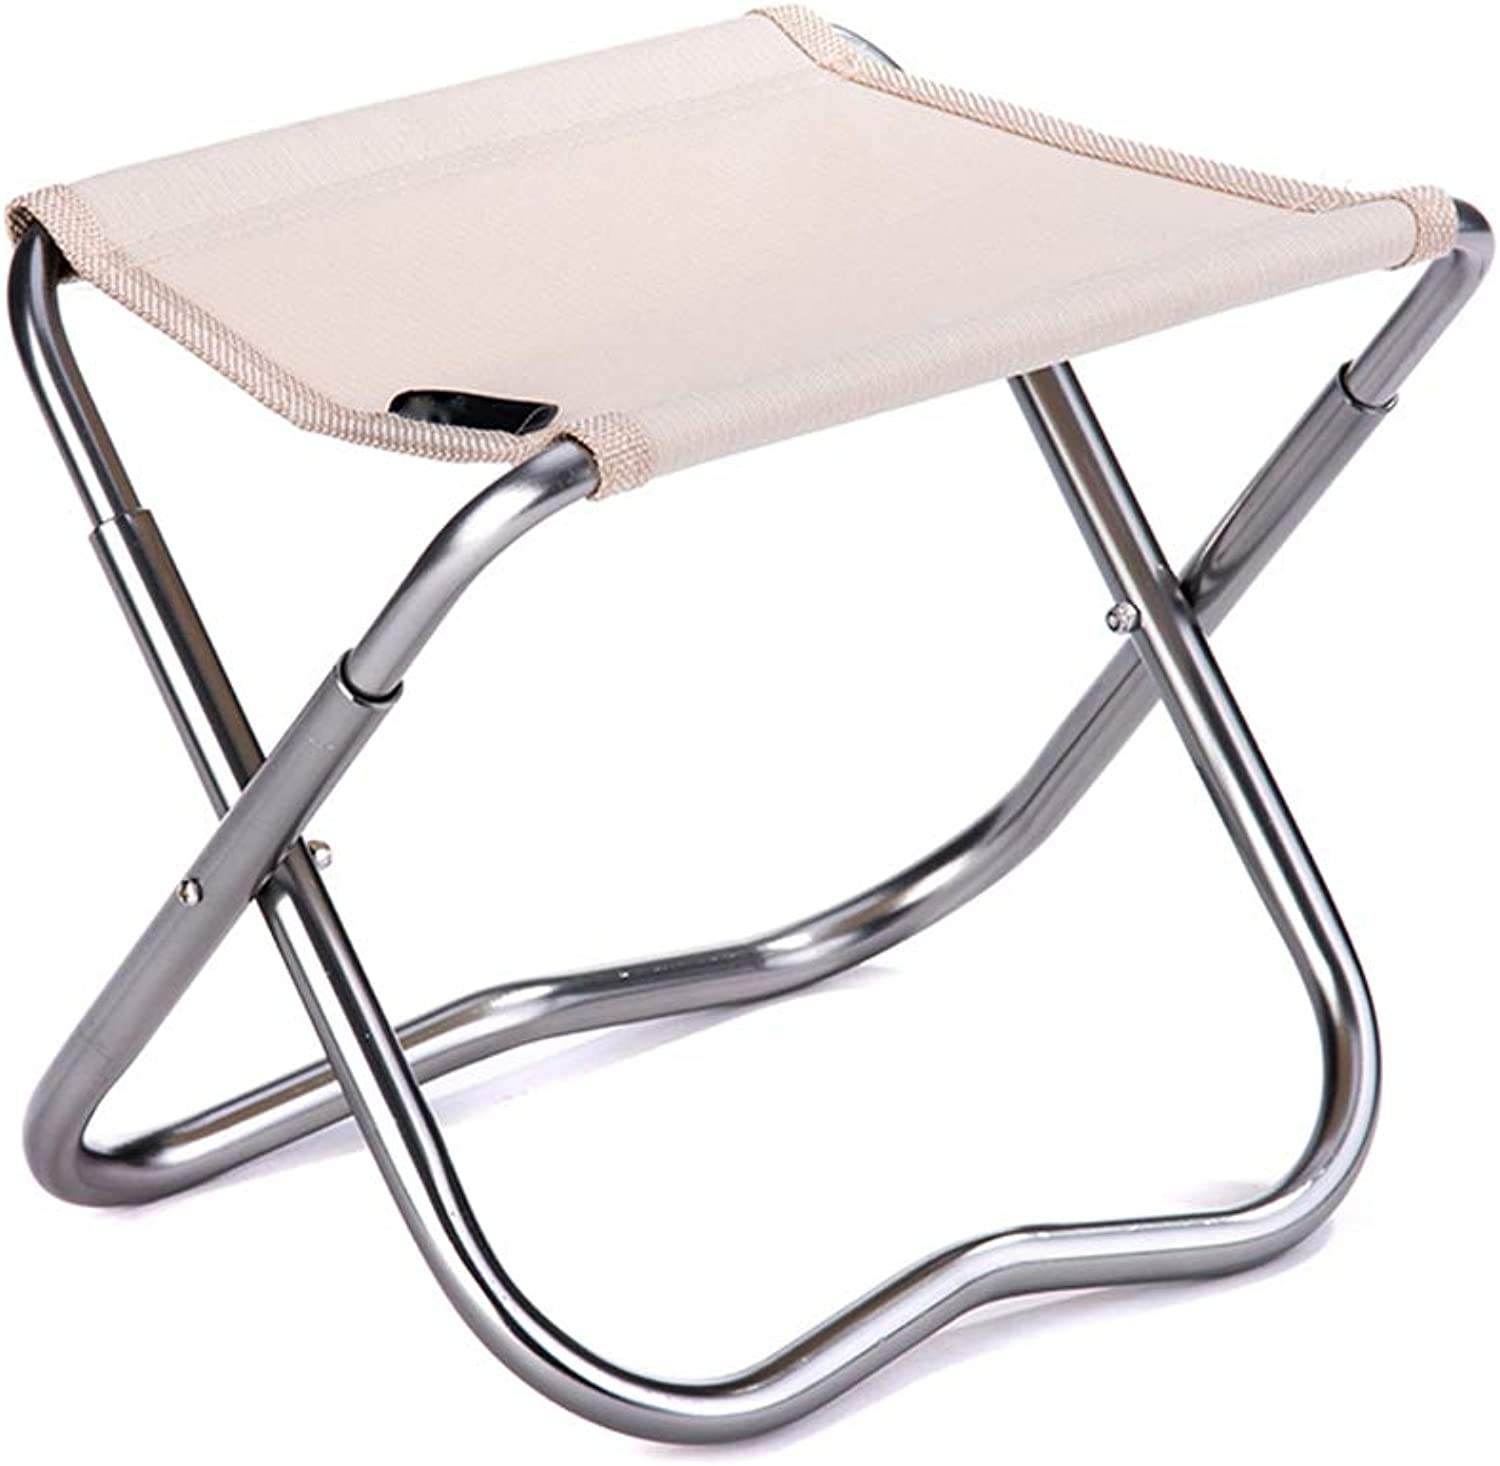 Portable Folding Camping Stool, Ultralight Compact Hiking Stool Chair, Great for Travel,Beach,Hiking,Fishing, with Carry Bag,Beige